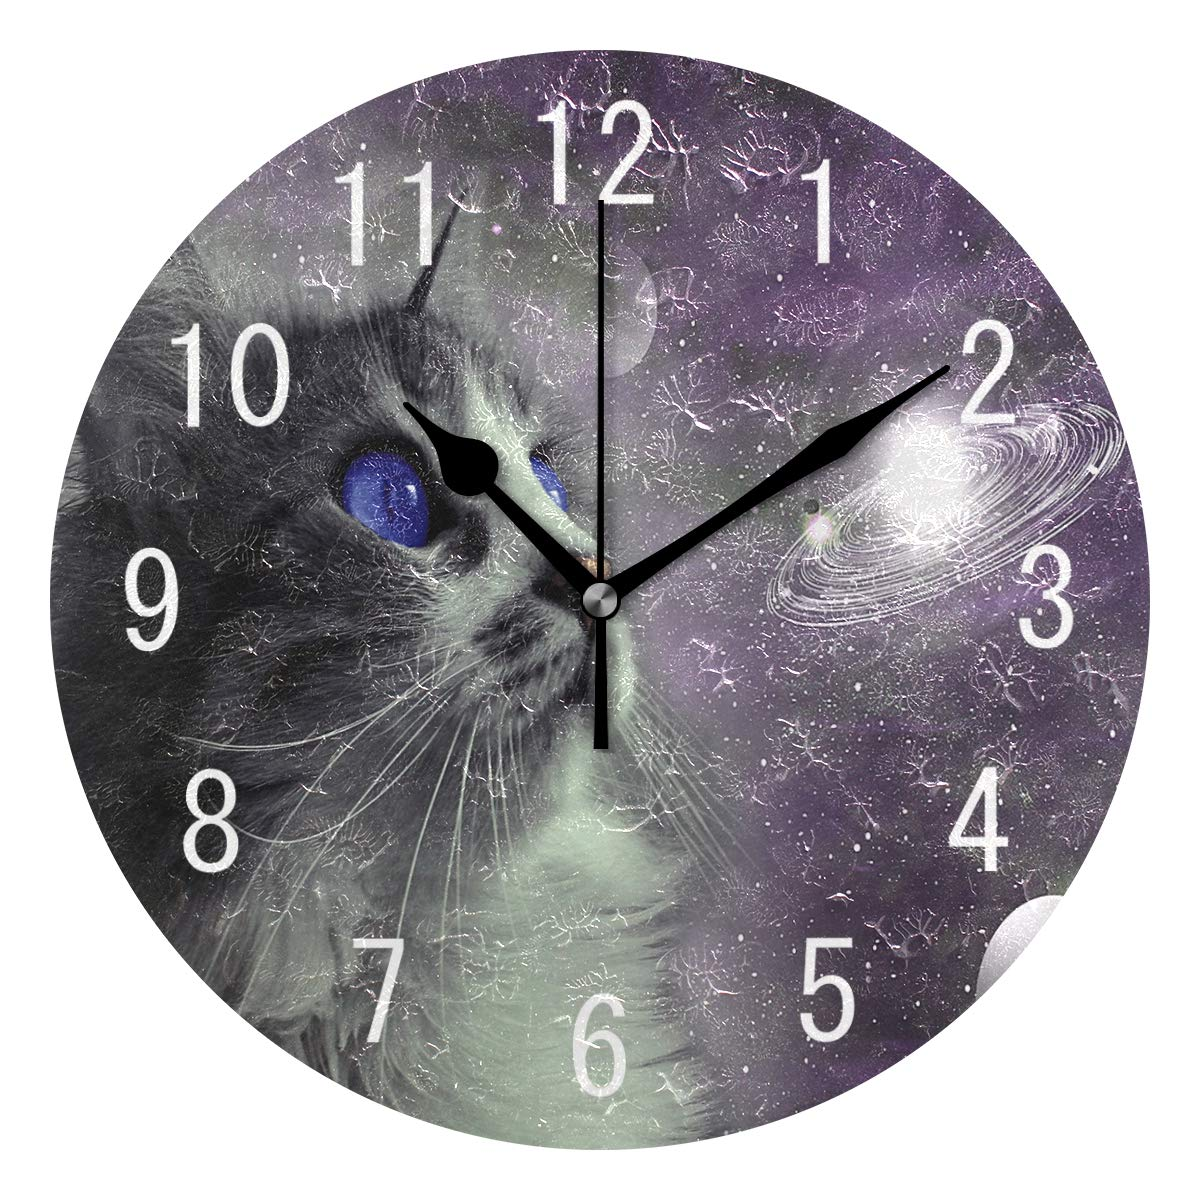 ALAZA Home Decor Solar System Cat Kitten Round Acrylic Wall Clock Non Ticking Silent Clock Art for Living Room Kitchen Bedroom